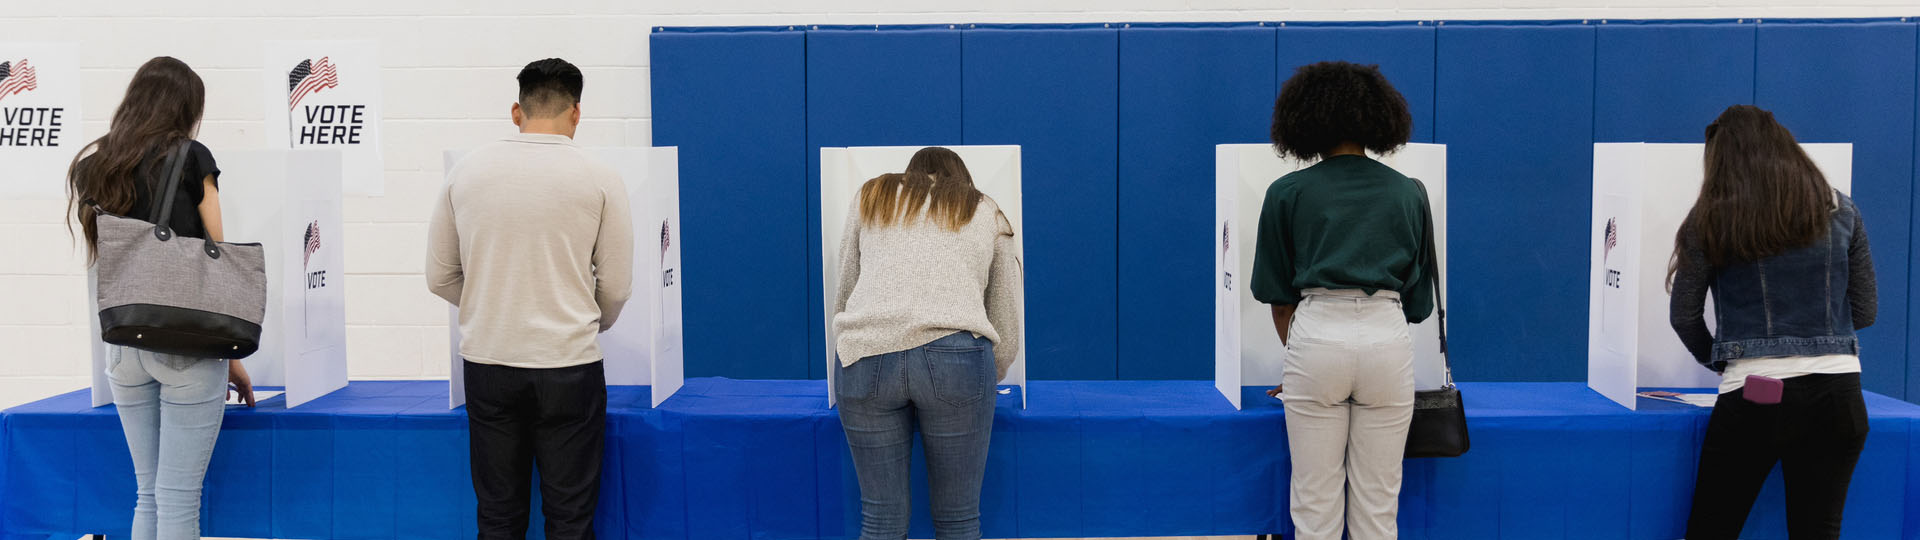 Long shot of several people voting at a polling place